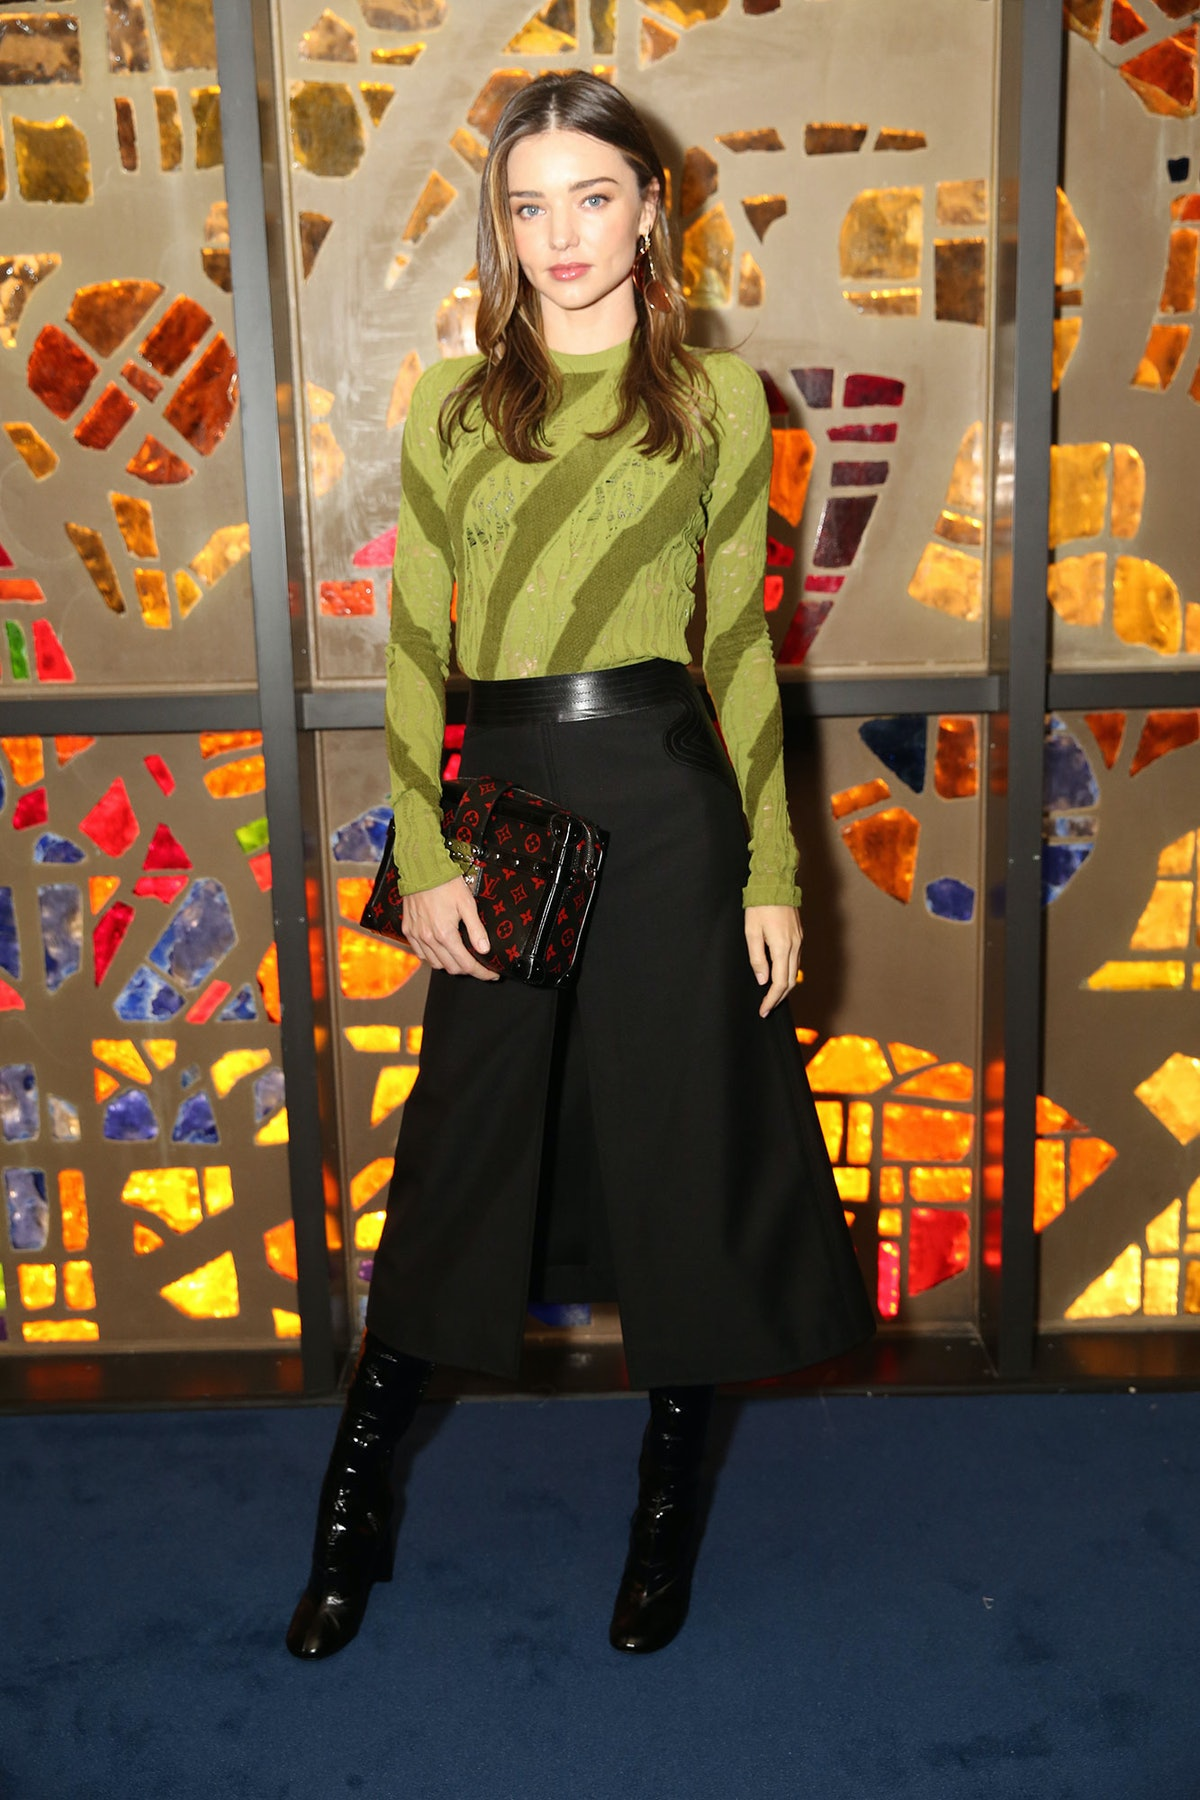 Miranda Kerr attends Louis Vuitton's celebration of Pierre Paulin's Playing with Shapes